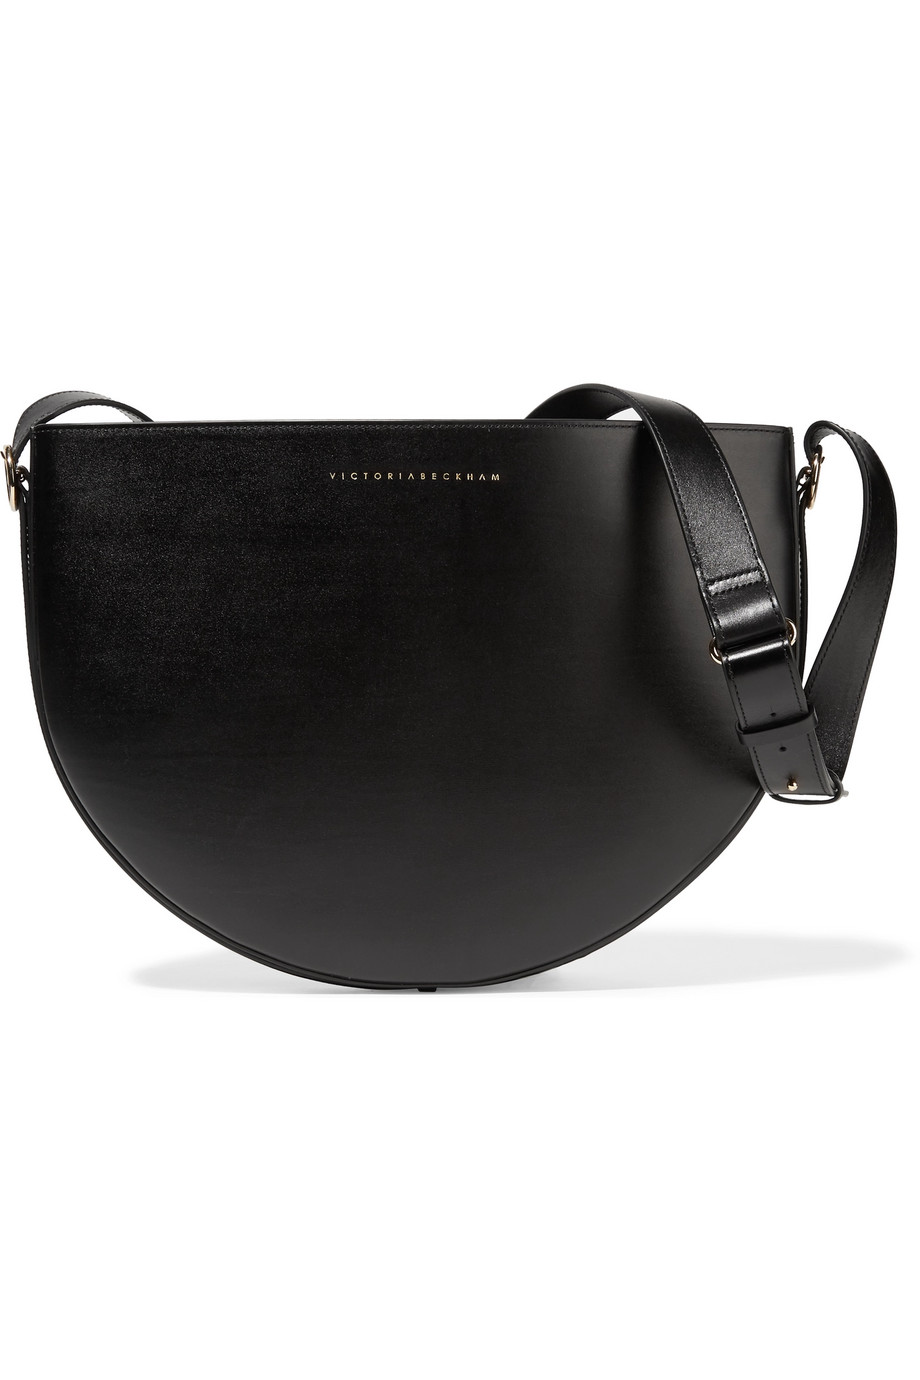 Victoria Beckham Half Moon Leather Shoulder Bag, Black, Women's